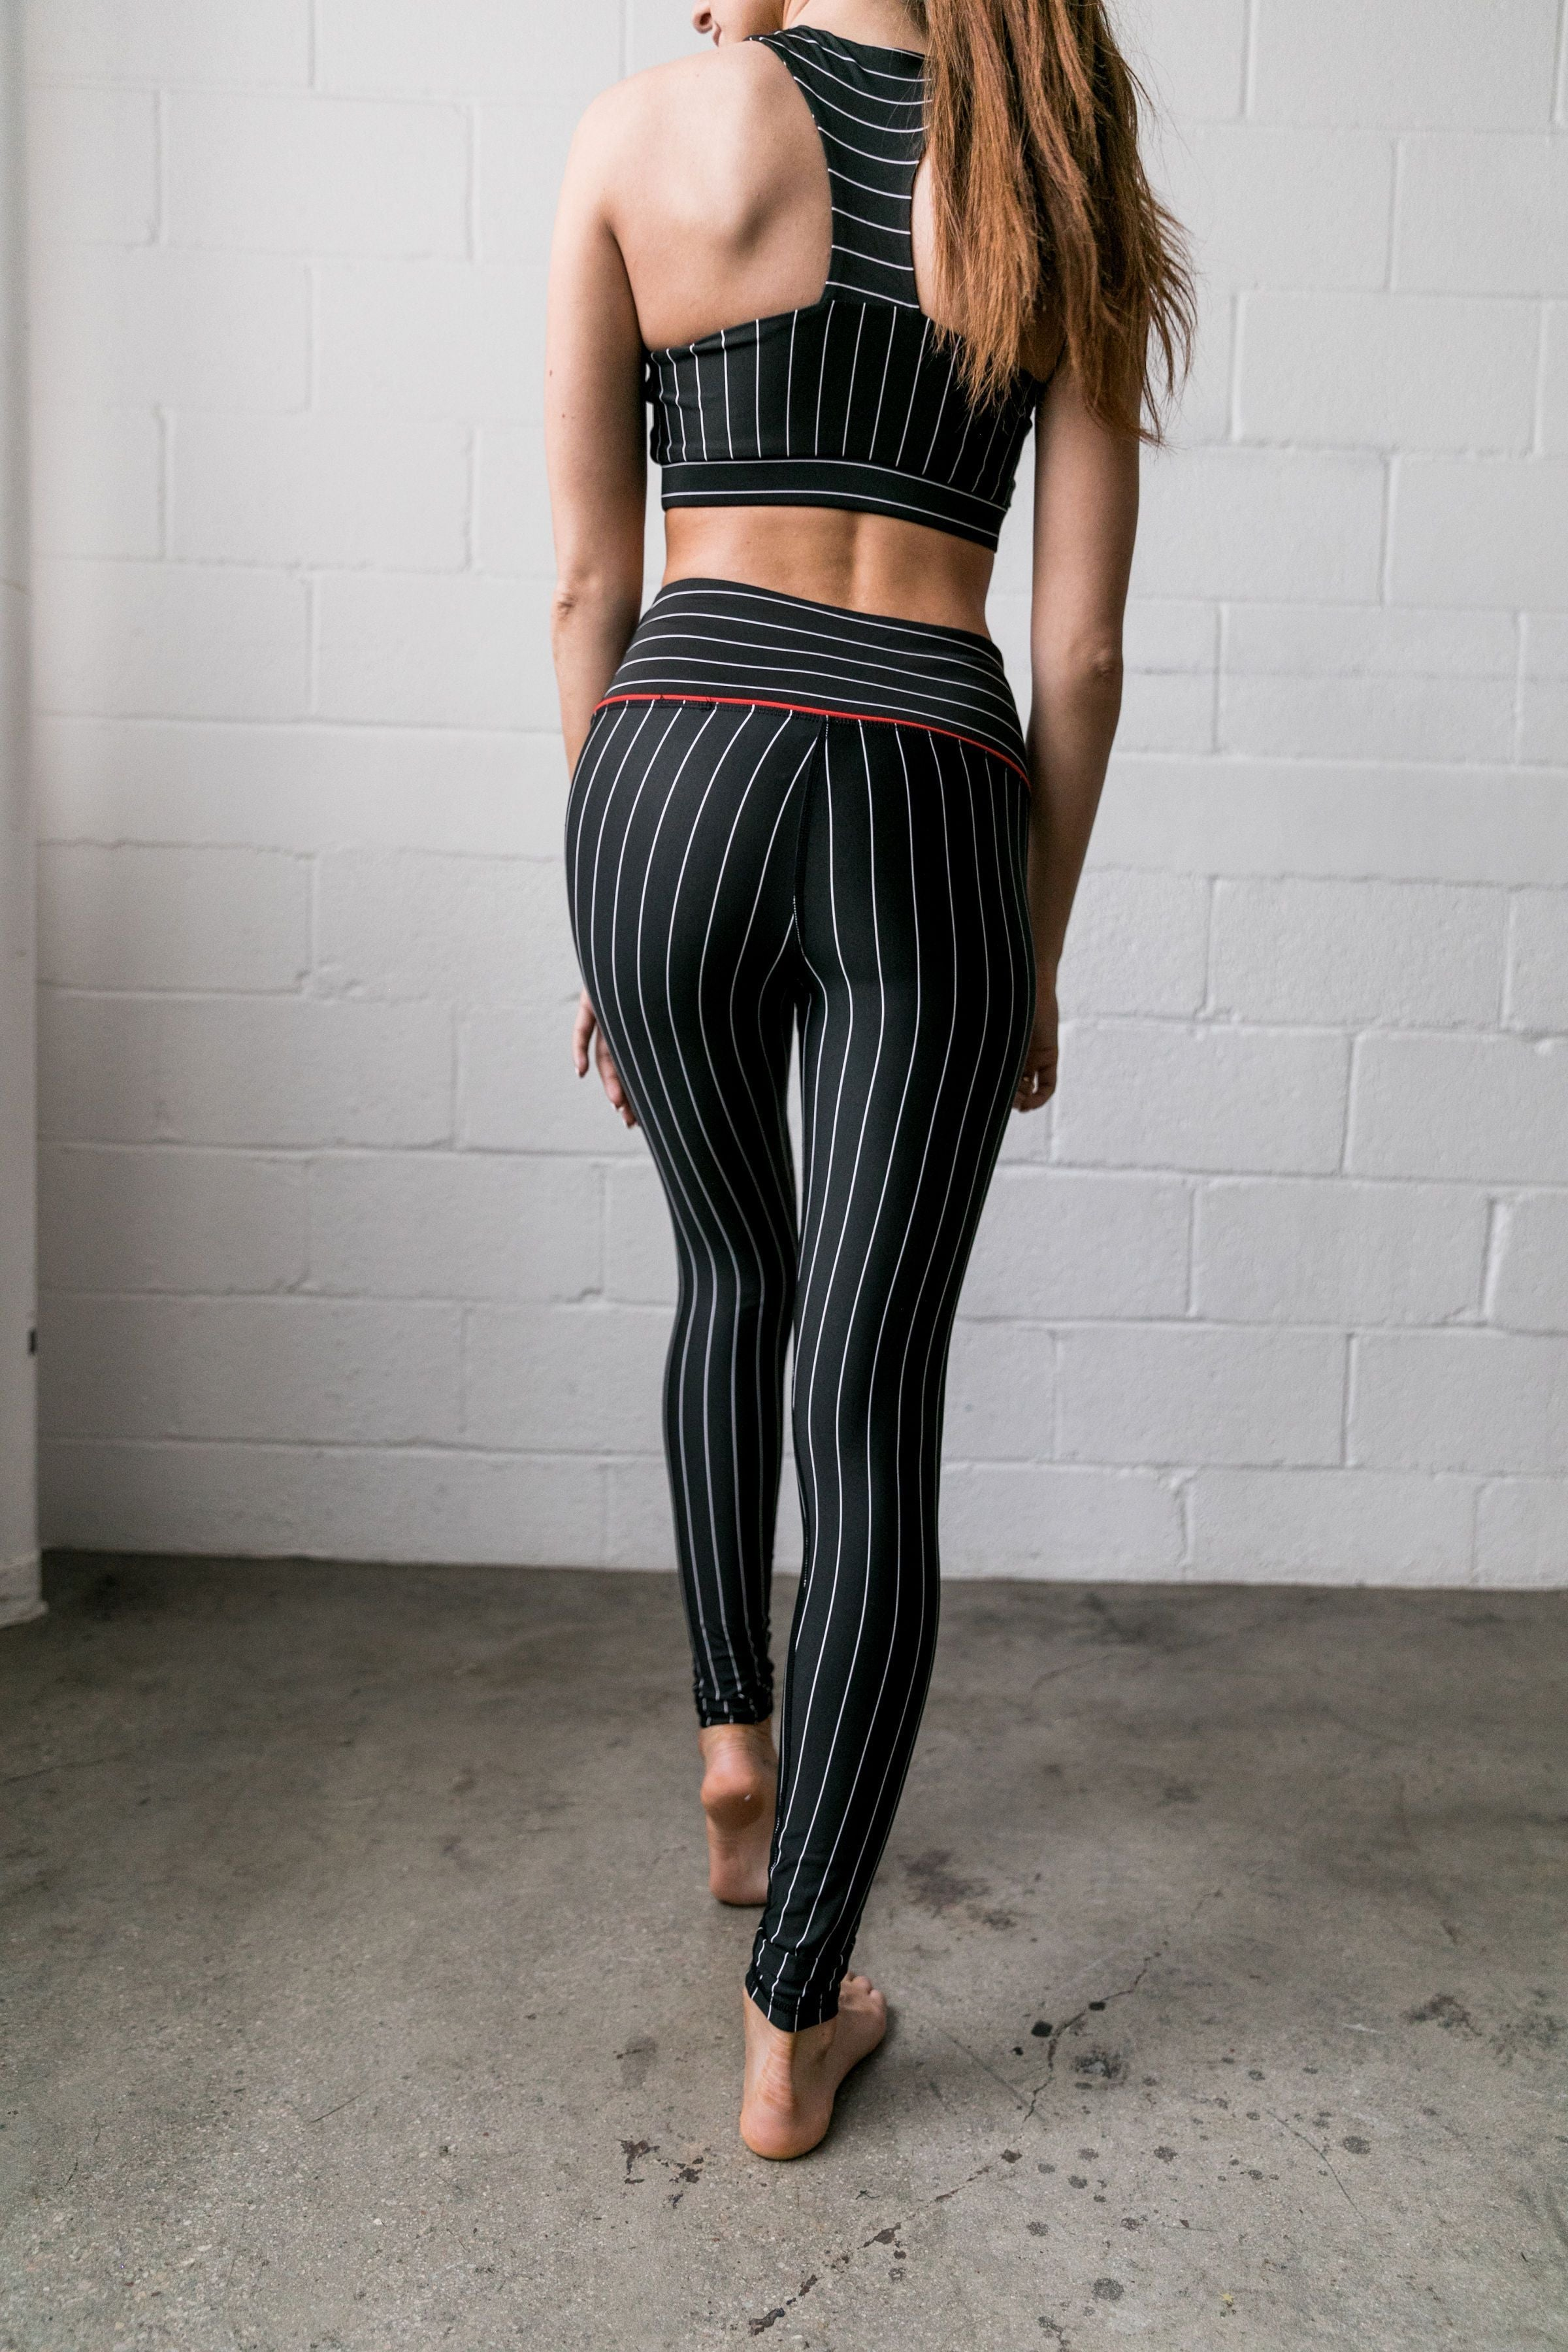 True Stripes Athletic Leggings - ALL SALES FINAL